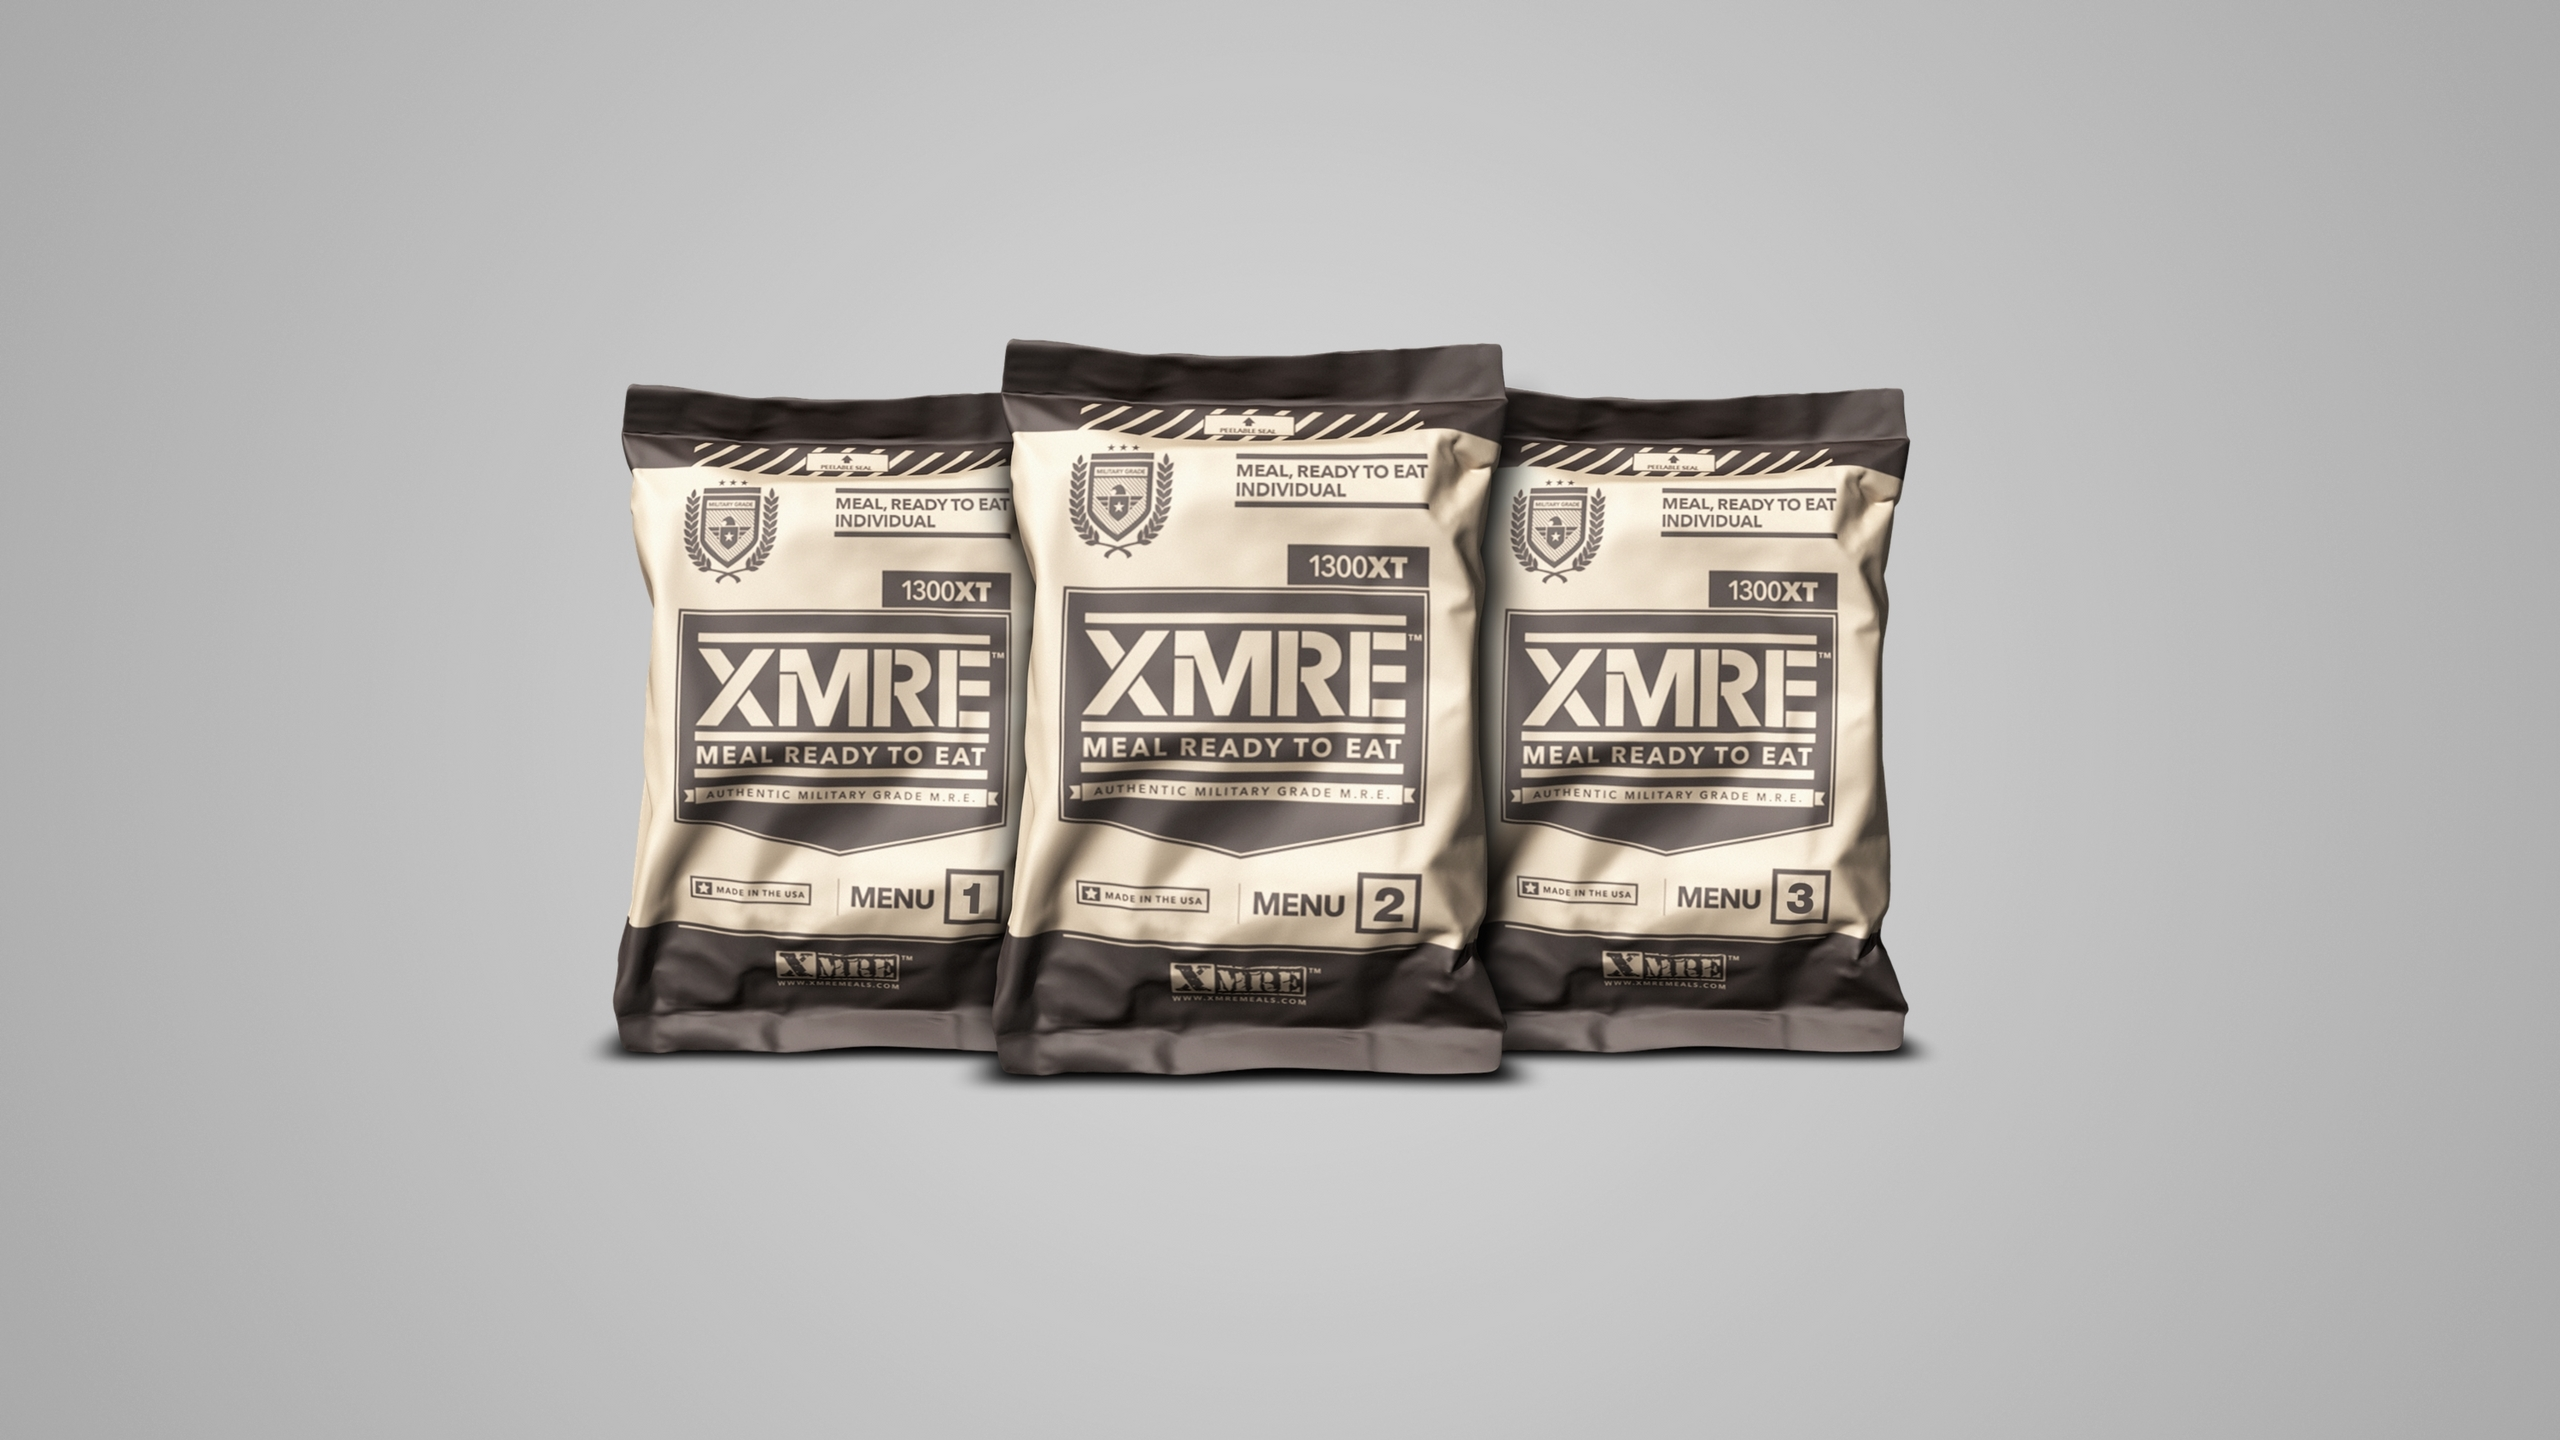 1300 XMRE What MRE Meals Are All About